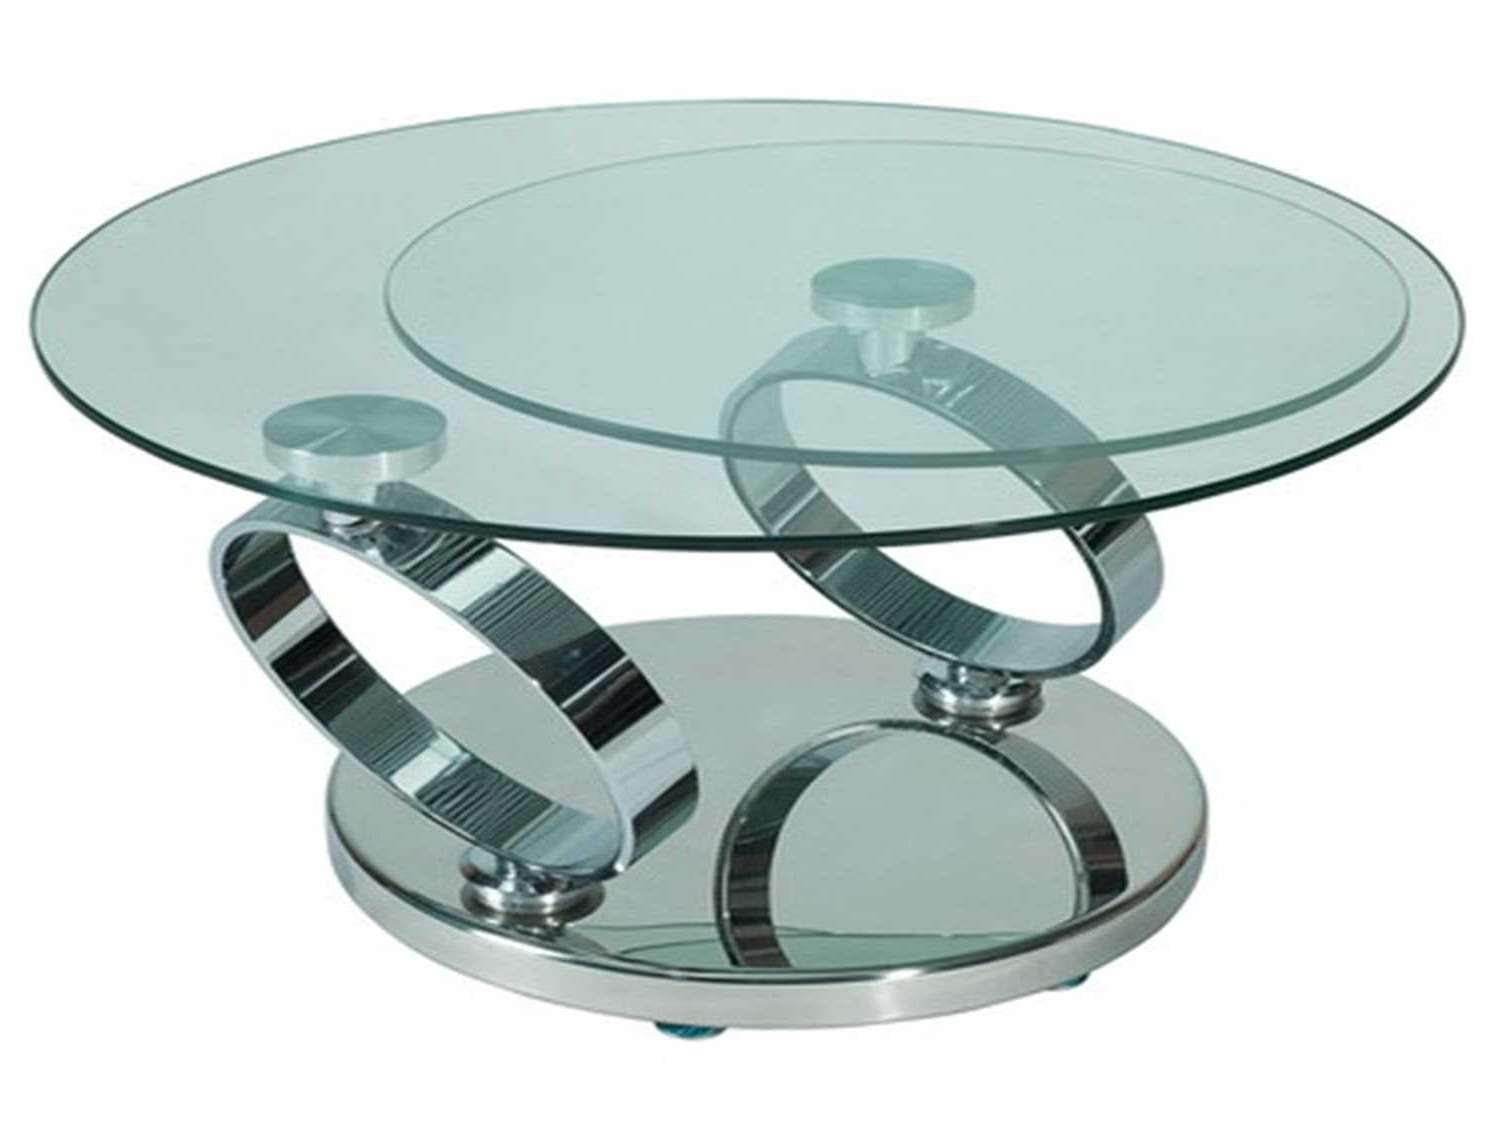 Blsolarct With Regard To Trendy Round Swivel Coffee Tables (View 18 of 20)